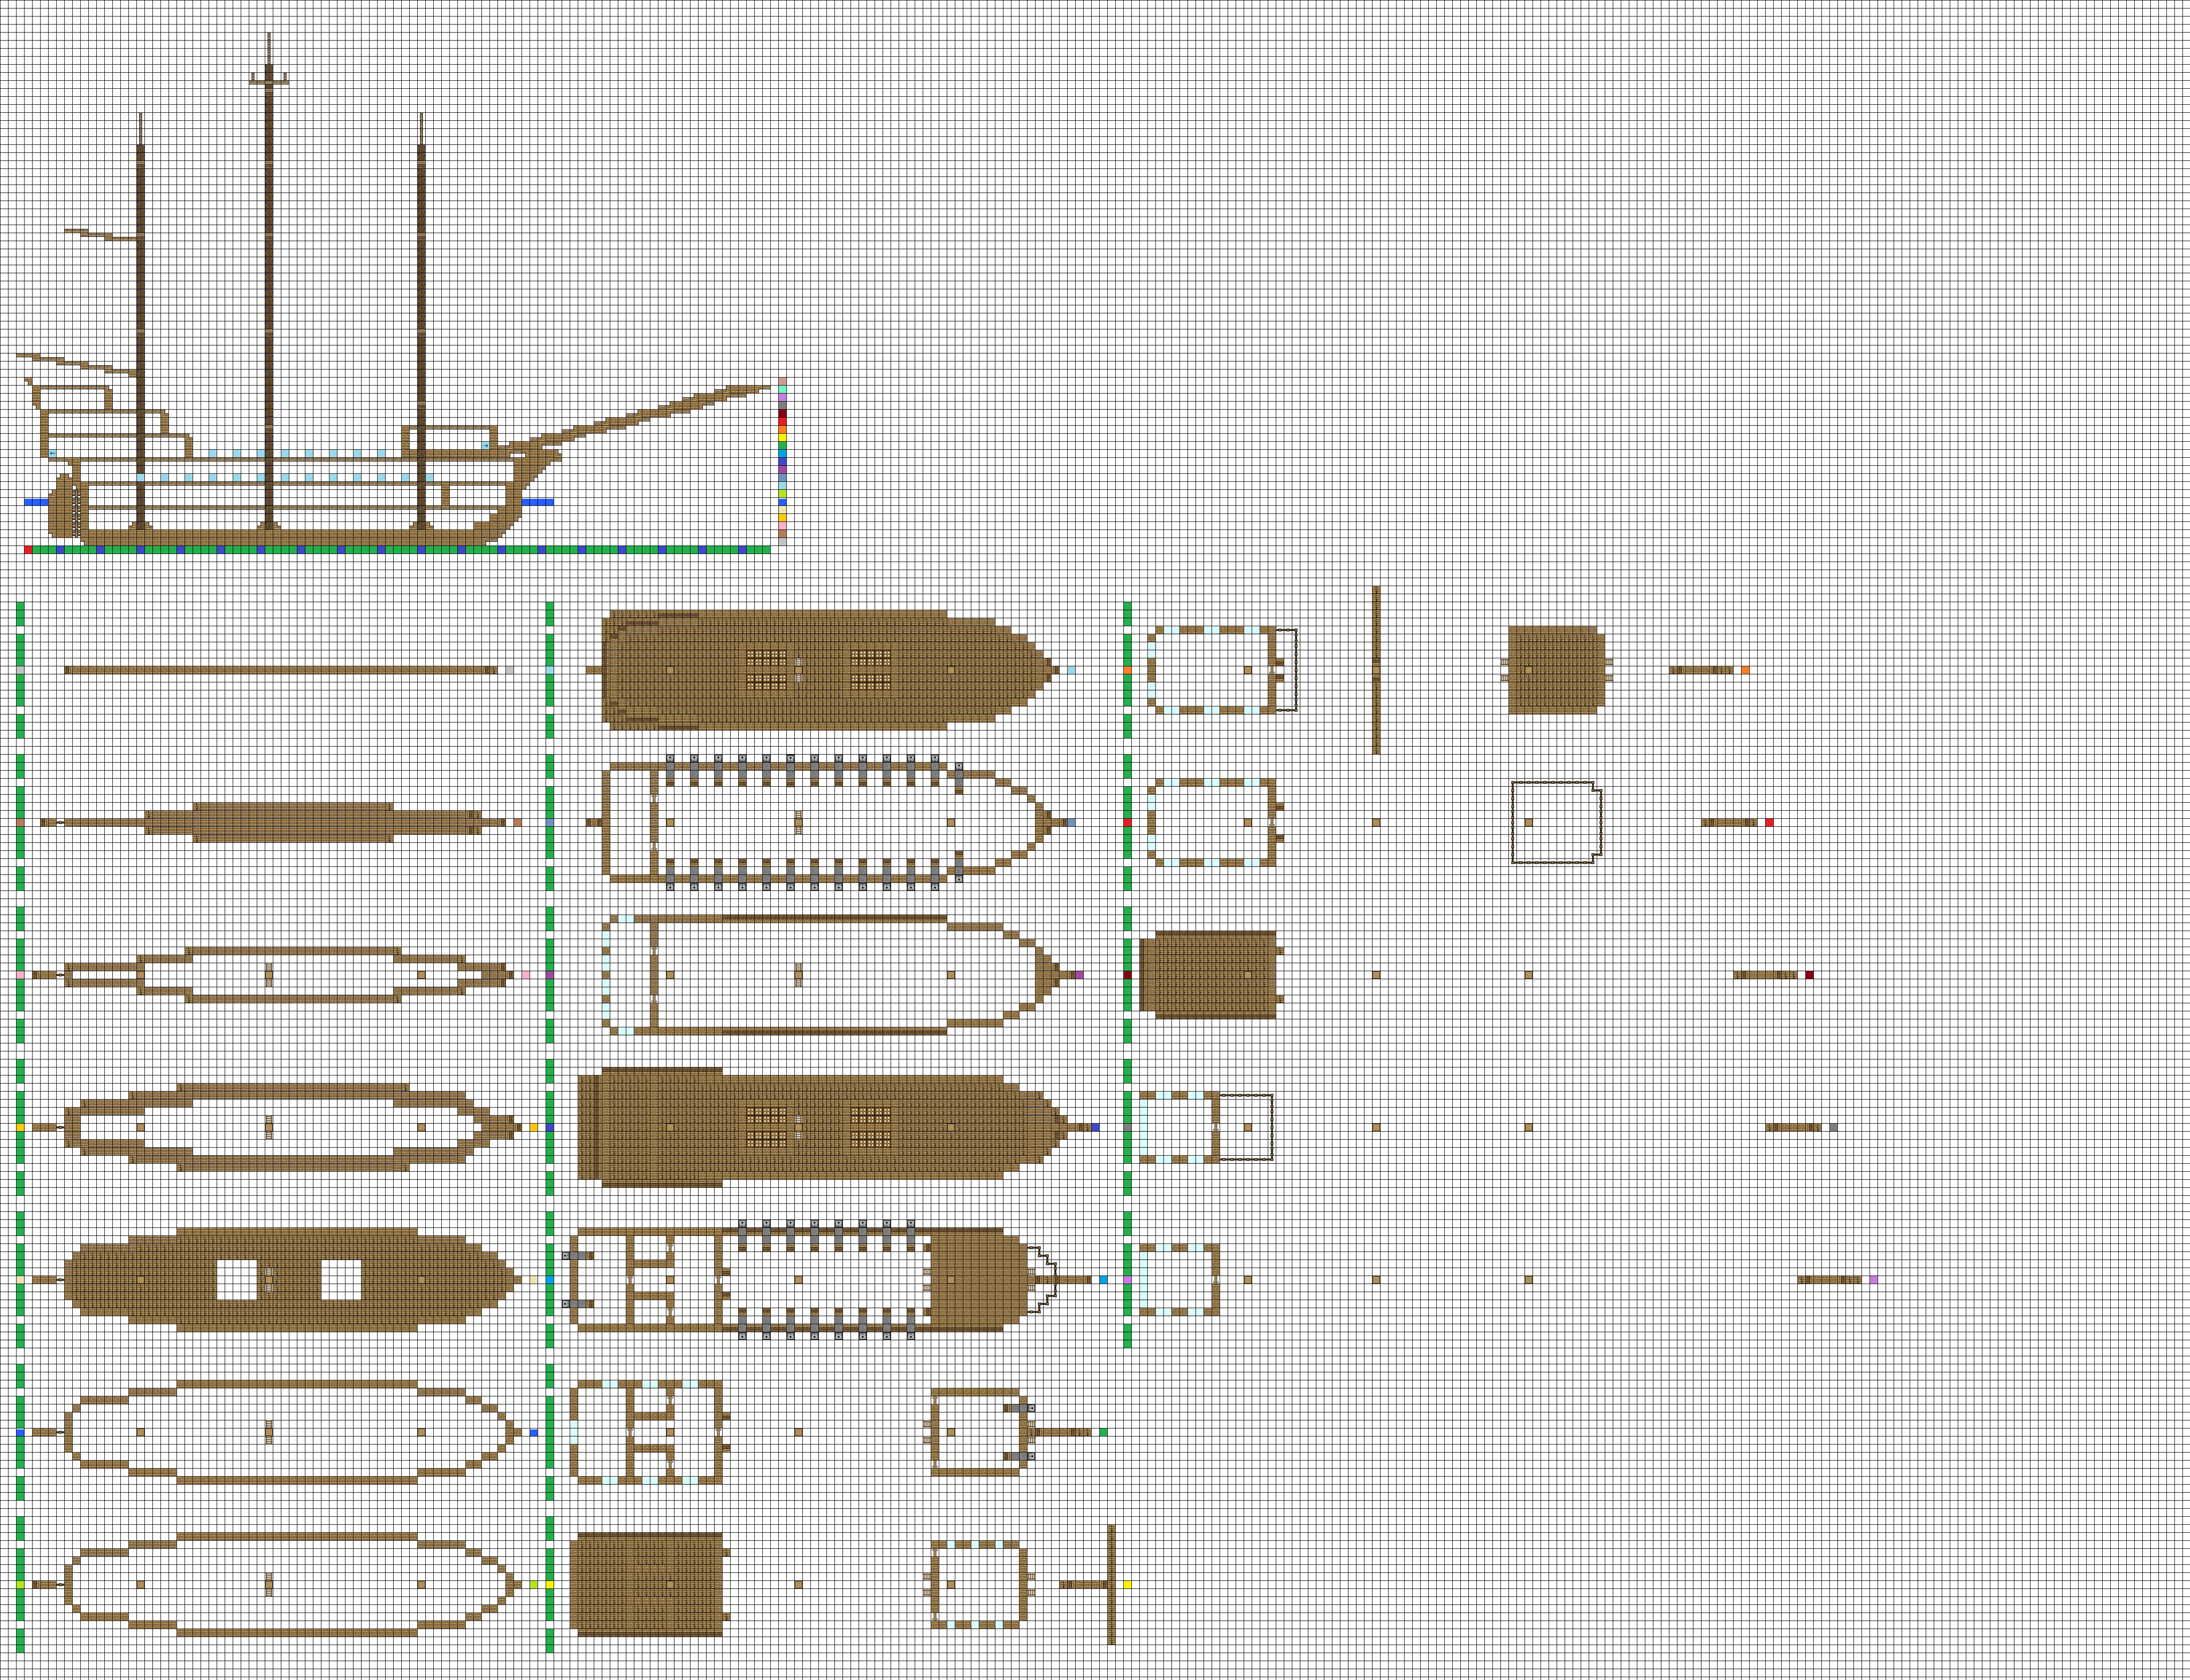 Pirate Ship Design Schematics - Explore Schematic Wiring Diagram •